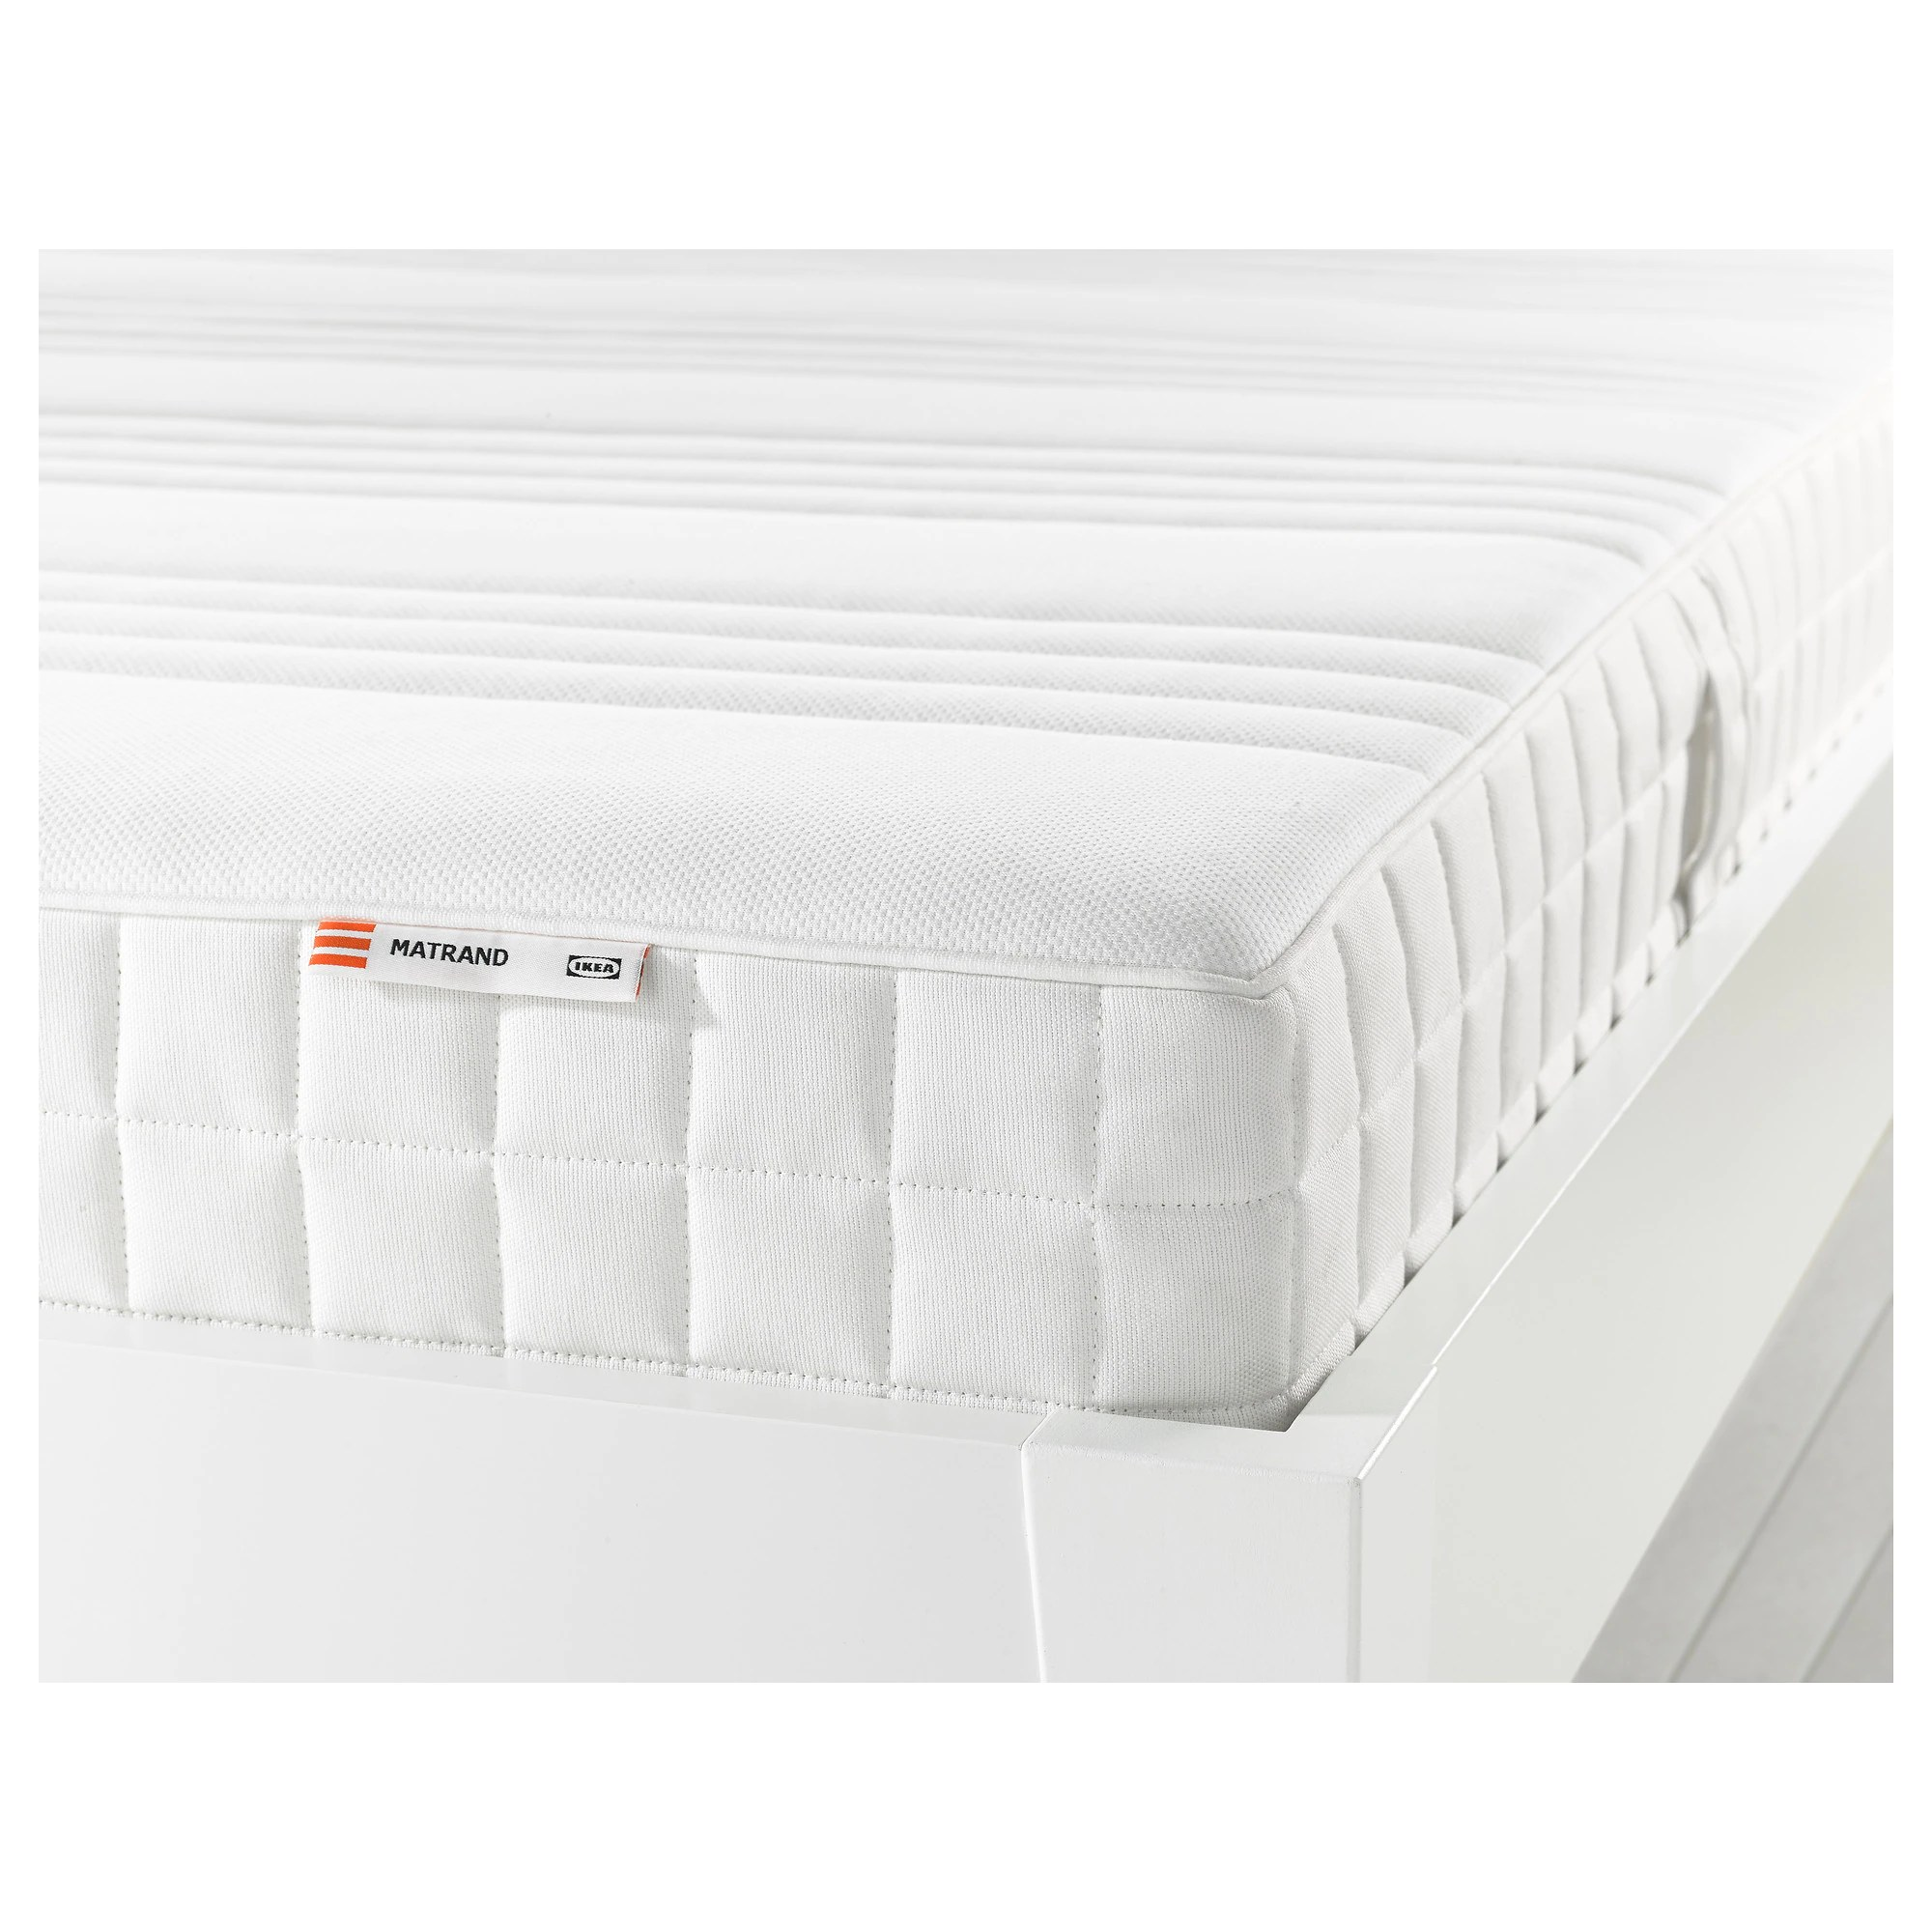 Memory Foam Mattress Too Firm Matrand Memory Foam Mattress Firm White